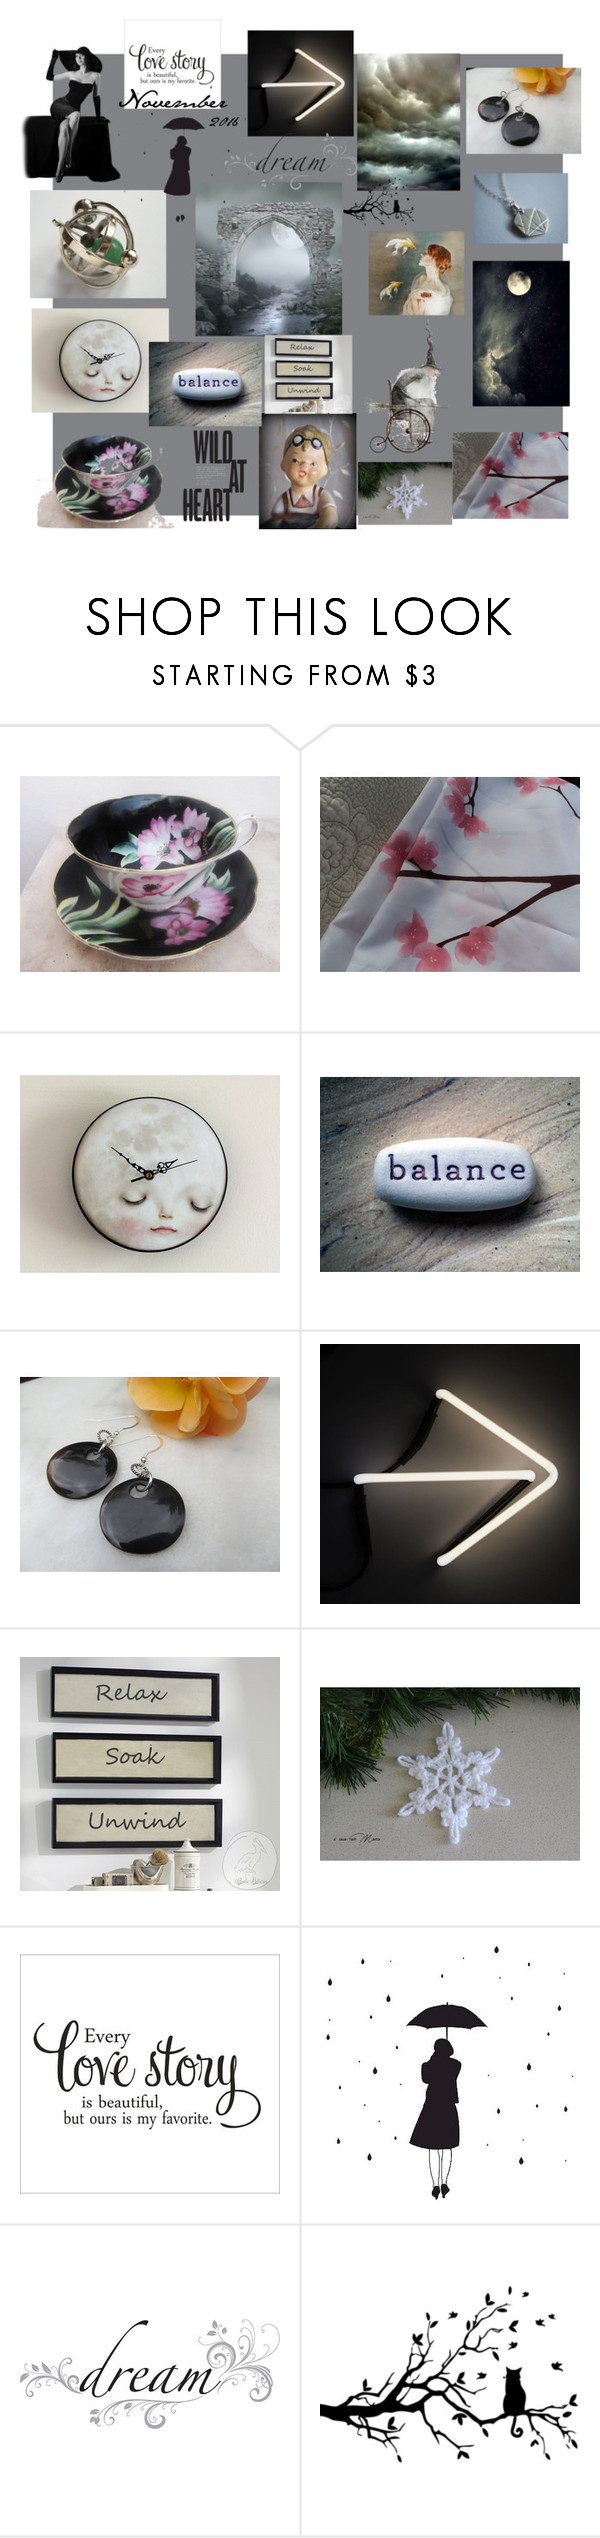 """""""Monday"""" by bizarrejewelry ❤ liked on Polyvore featuring WALL, Seletti, ADZif and jcp"""